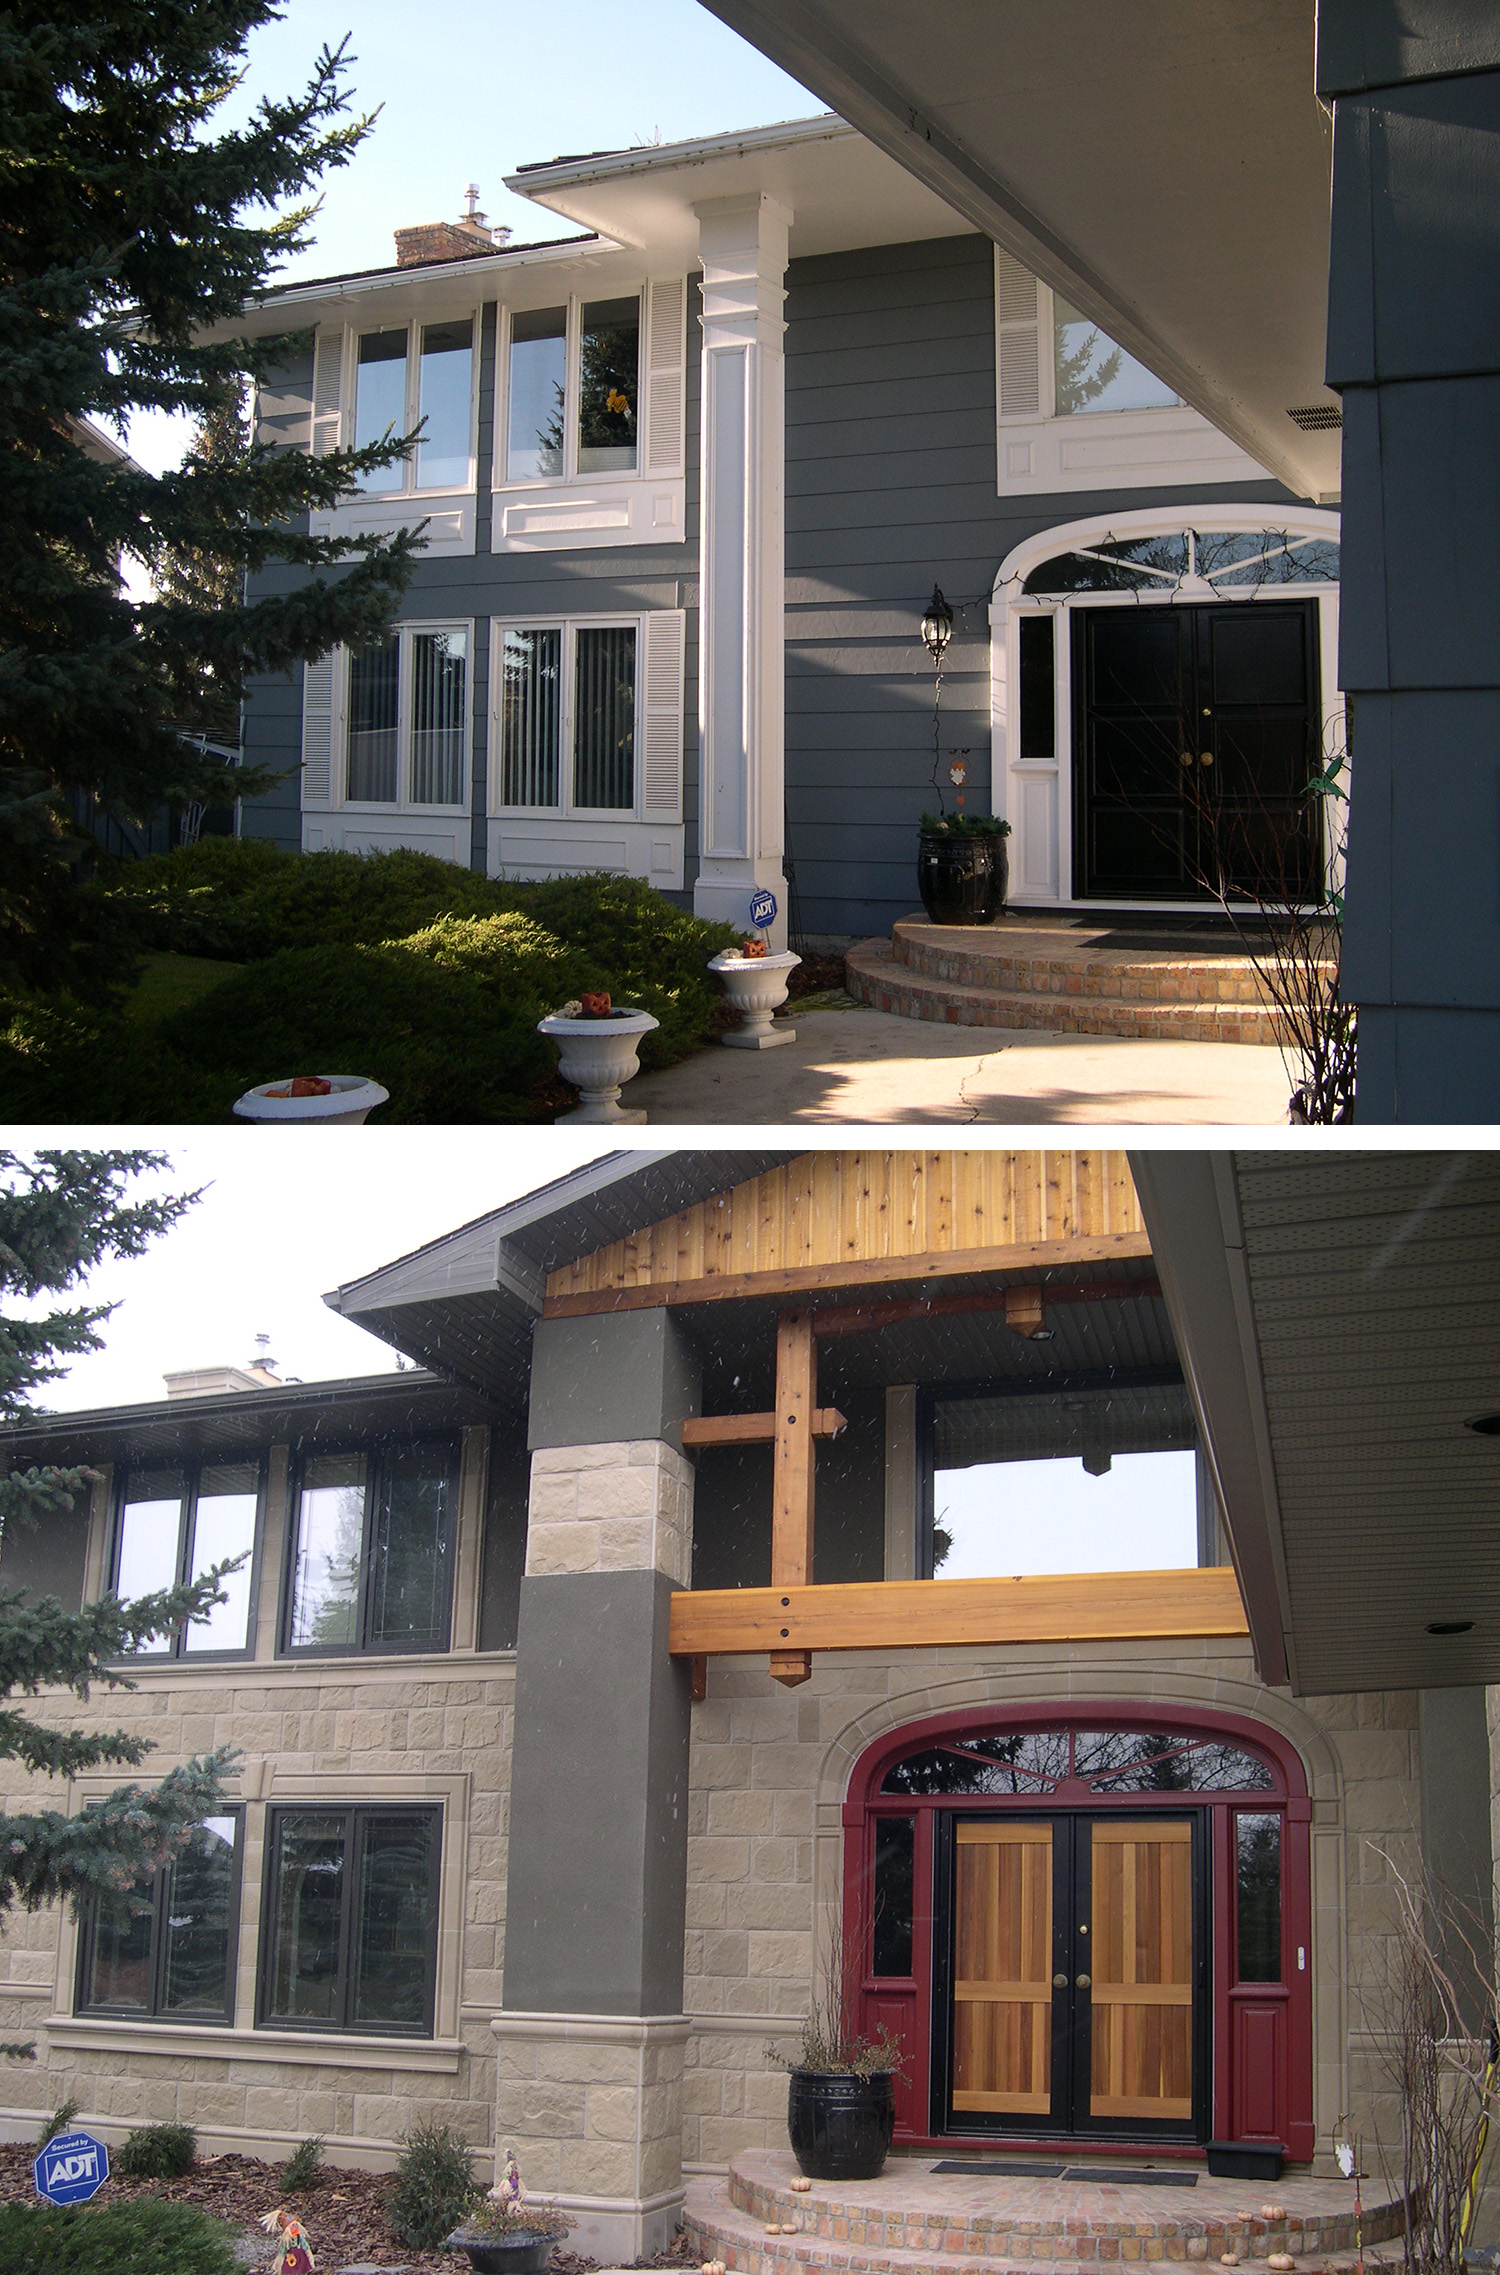 Before & After of an Exterior Renovation in the Calgary community of Lake Bonavista